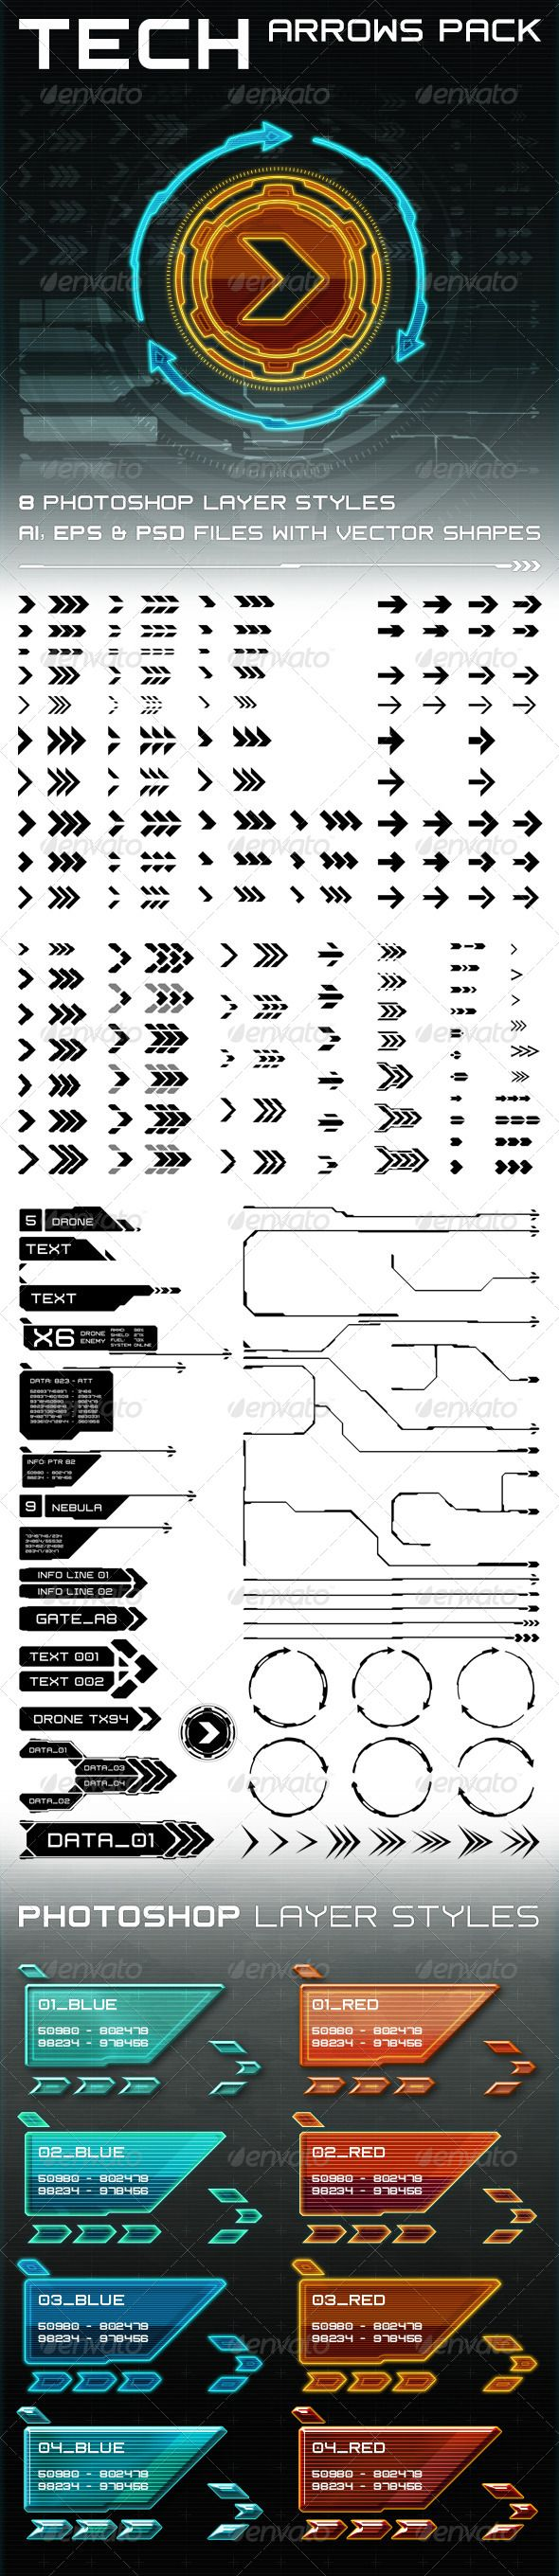 Tech Arrows Pack